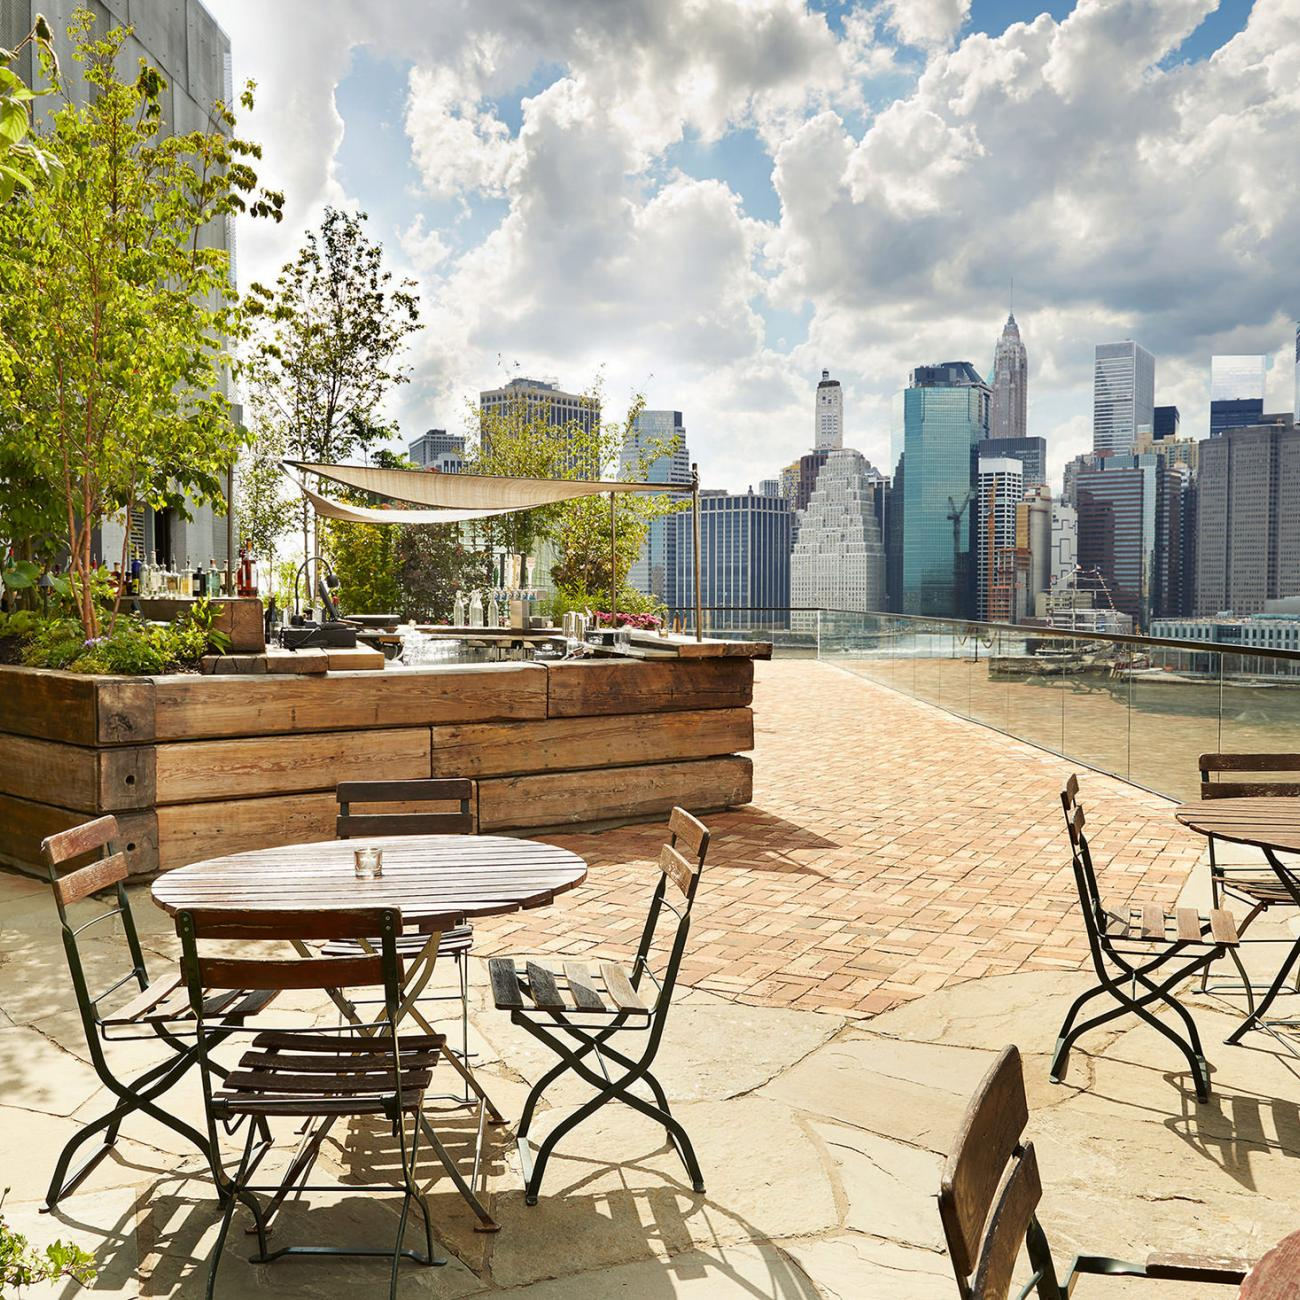 rooftop garden brooklyn 1 Rooftop Garden & Bar Brooklyn | 1 Hotel Brooklyn Bridge